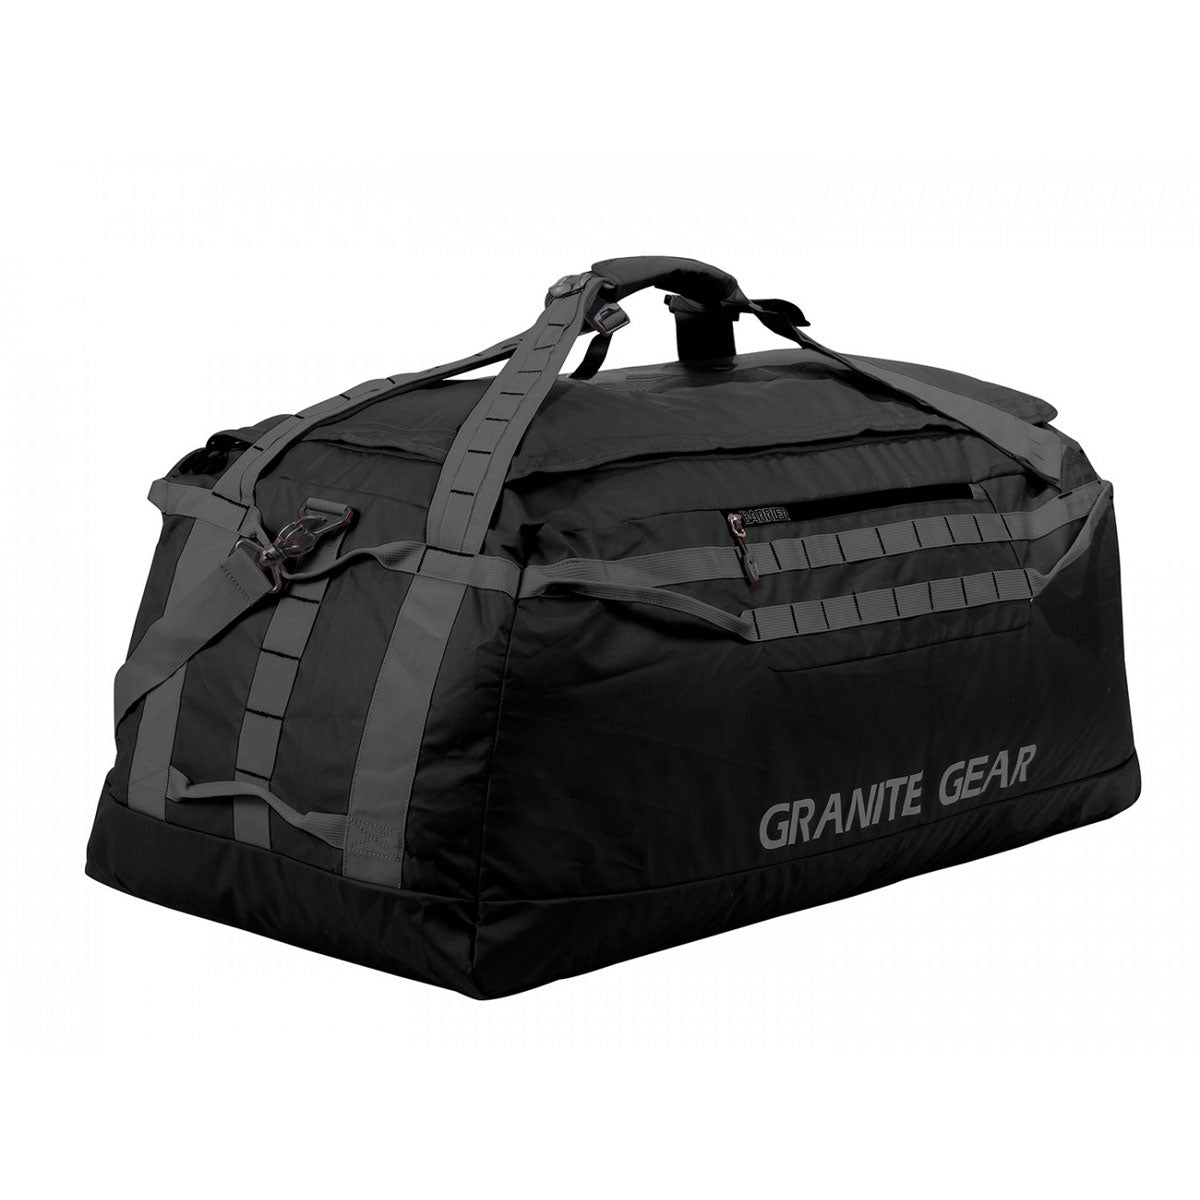 Granite Gear 36in Packable Duffel